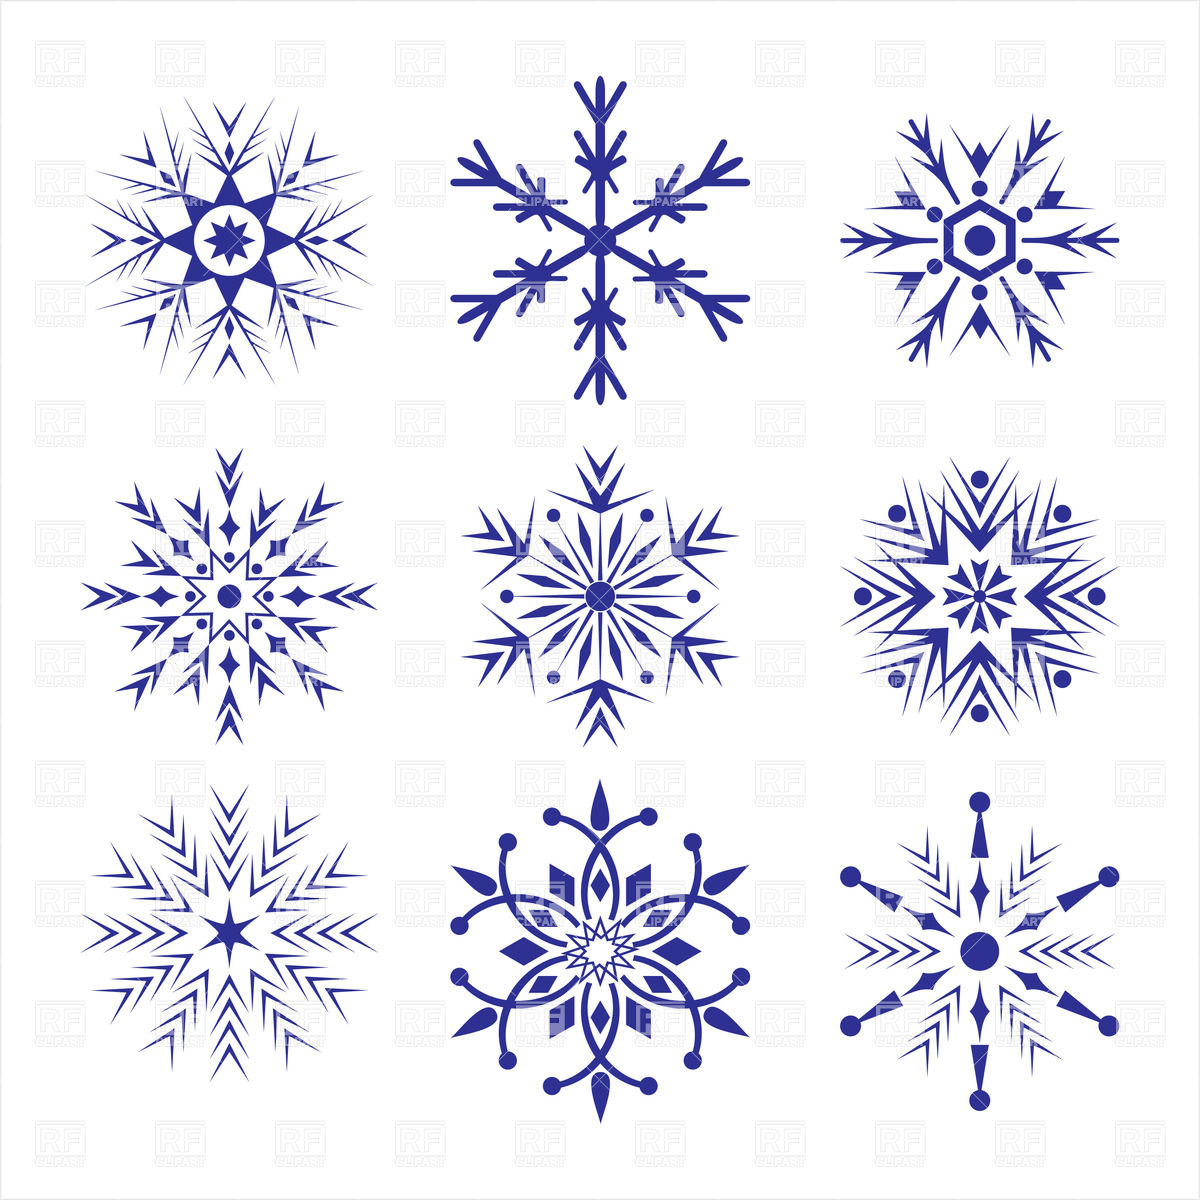 1200x1200 Ornate Snowflakes Vector Image Vector Artwork Of Design Elements